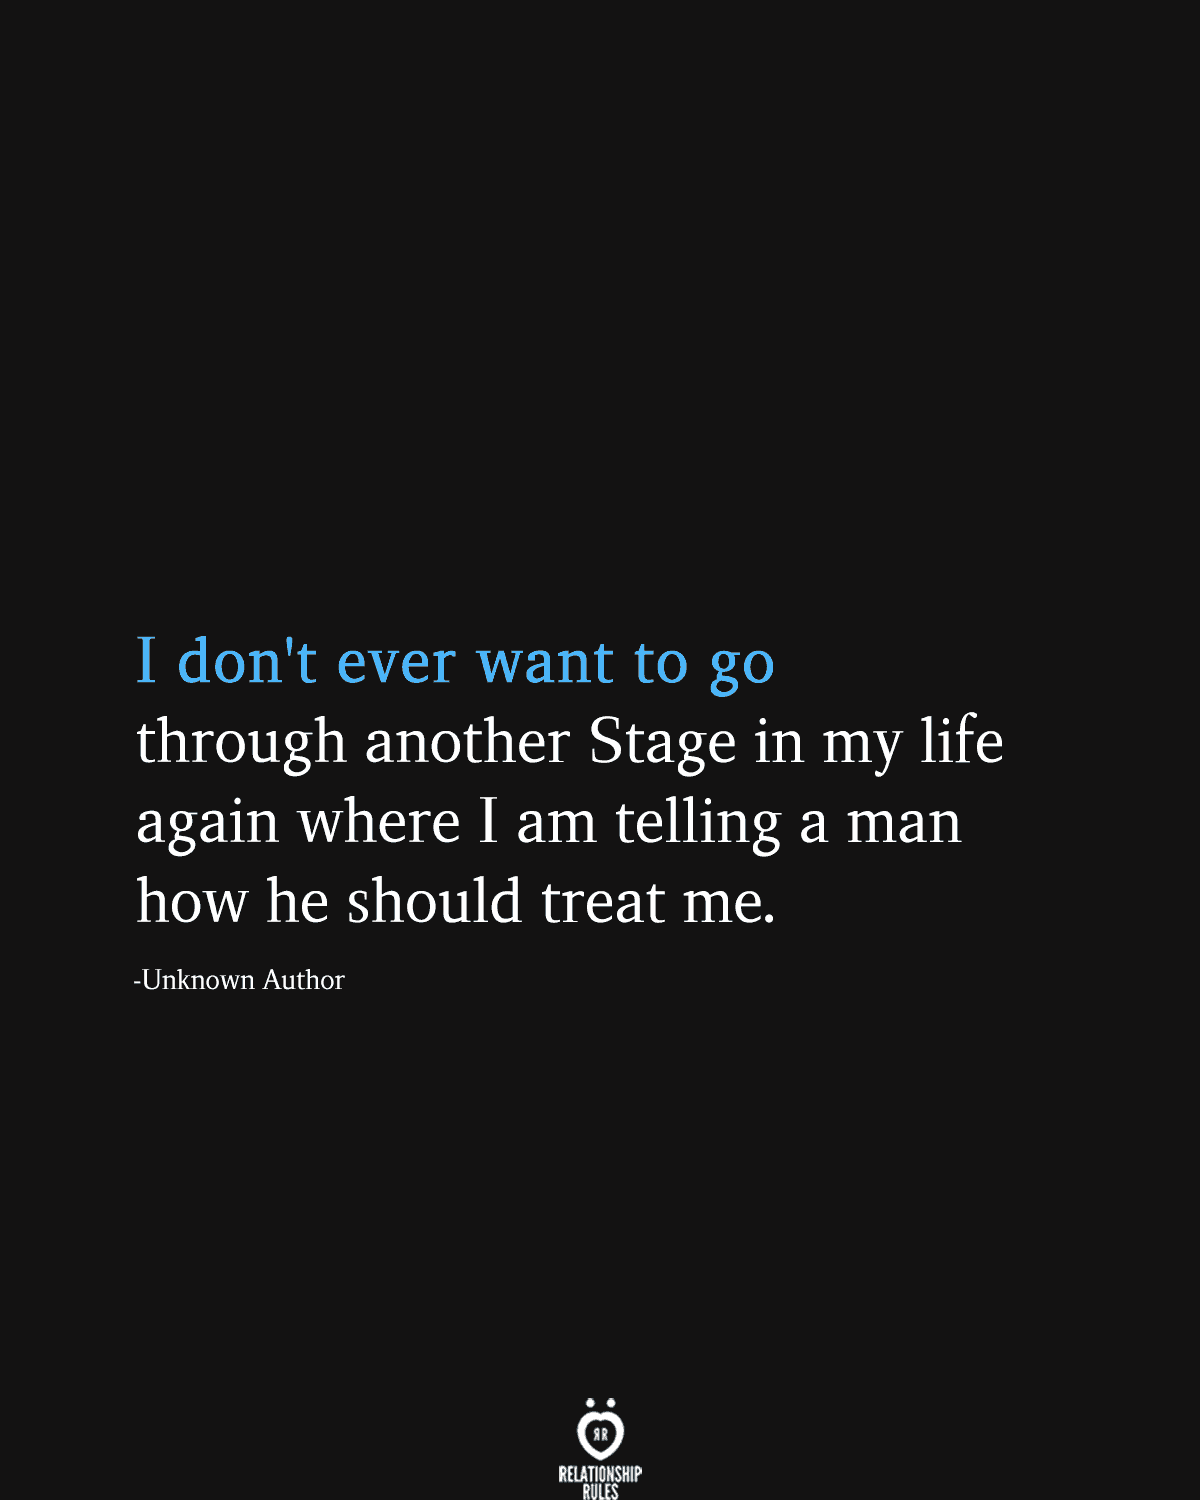 I Don't Ever Want To Go Through Another Stage In My Life Again